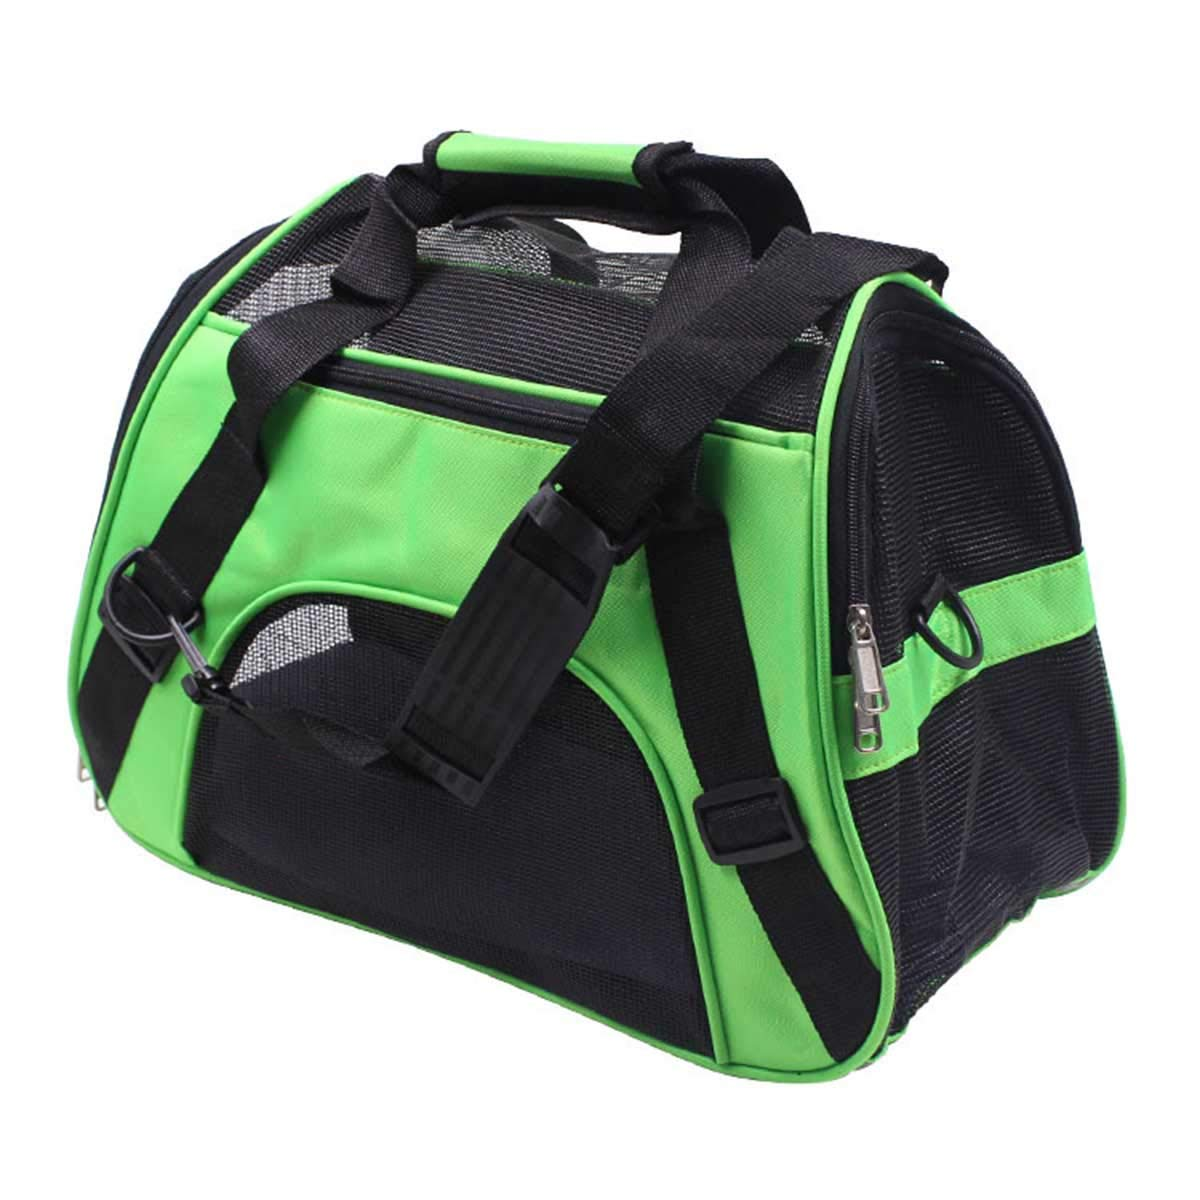 Green S 43x20x29cm Green S 43x20x29cm PETFDH Portable Pet Backpack Messenger Carrier Bags Cat Dog Carrier Outgoing Travel Teddy Packets Breathable Small Pet Handbag Green S 43x20x29cm